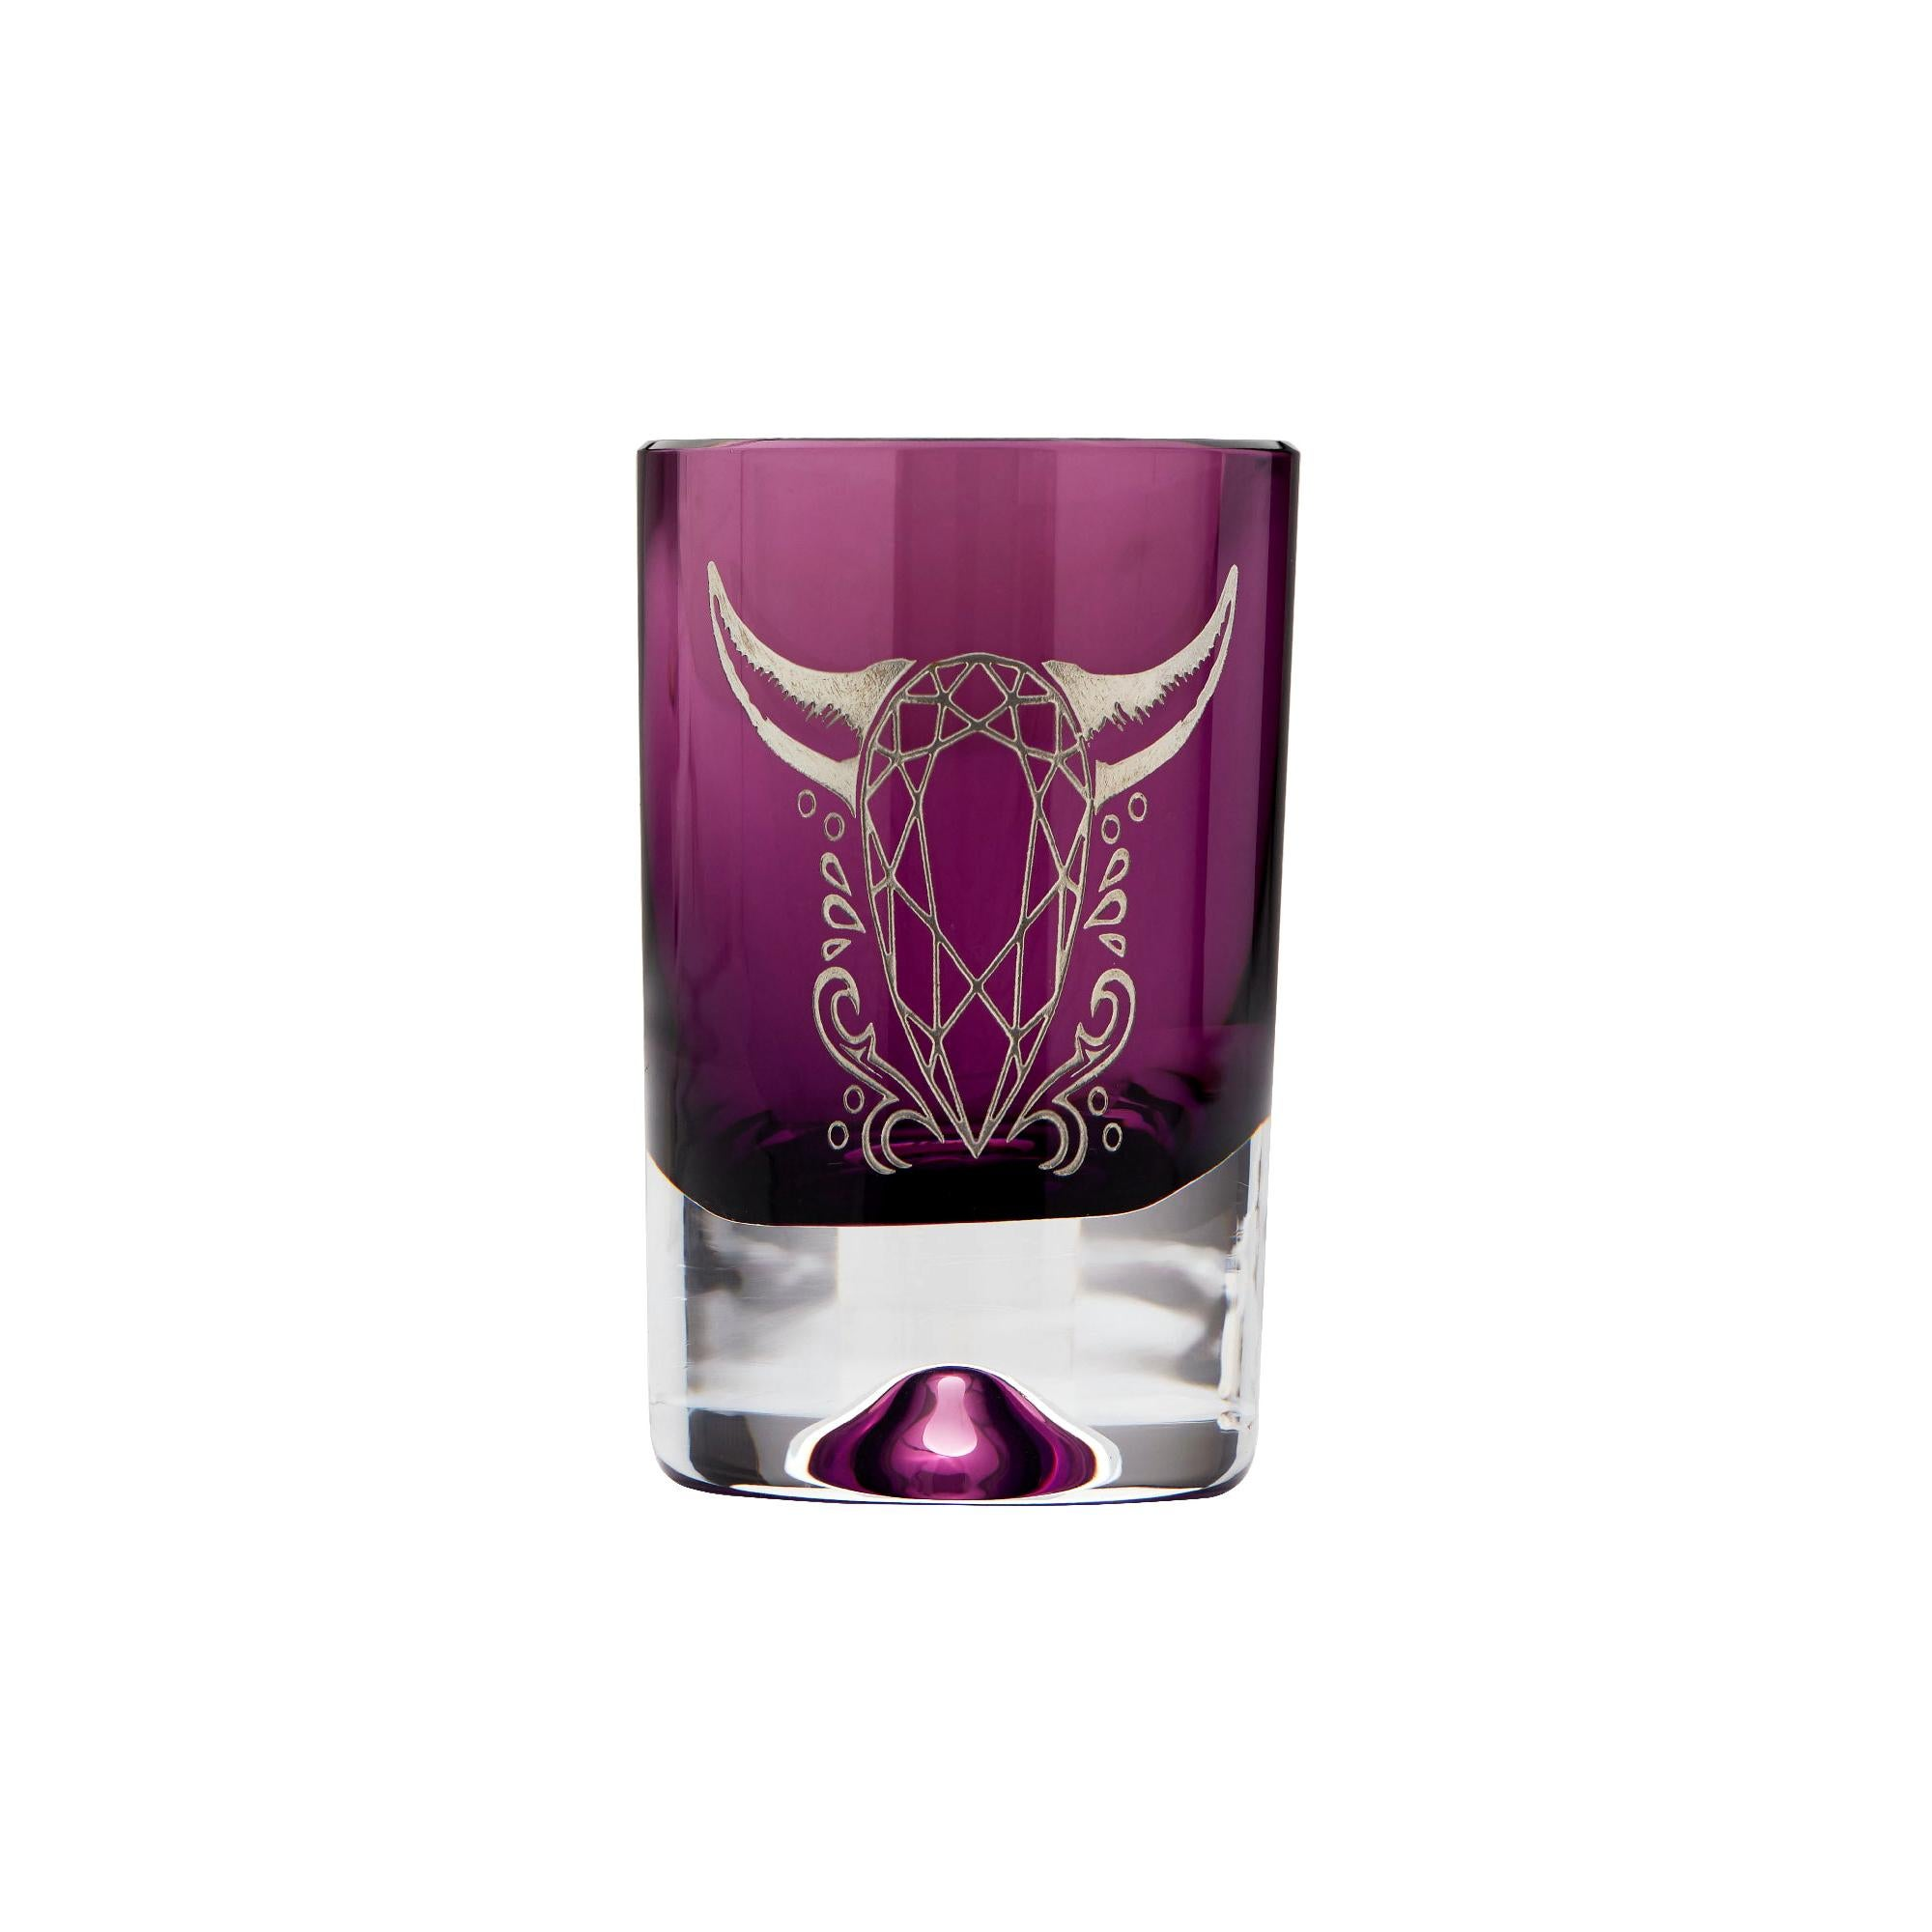 Stephen Webster Tequila Lore Cow Engraved Detail Amethyst Shot Glass - Set of 2